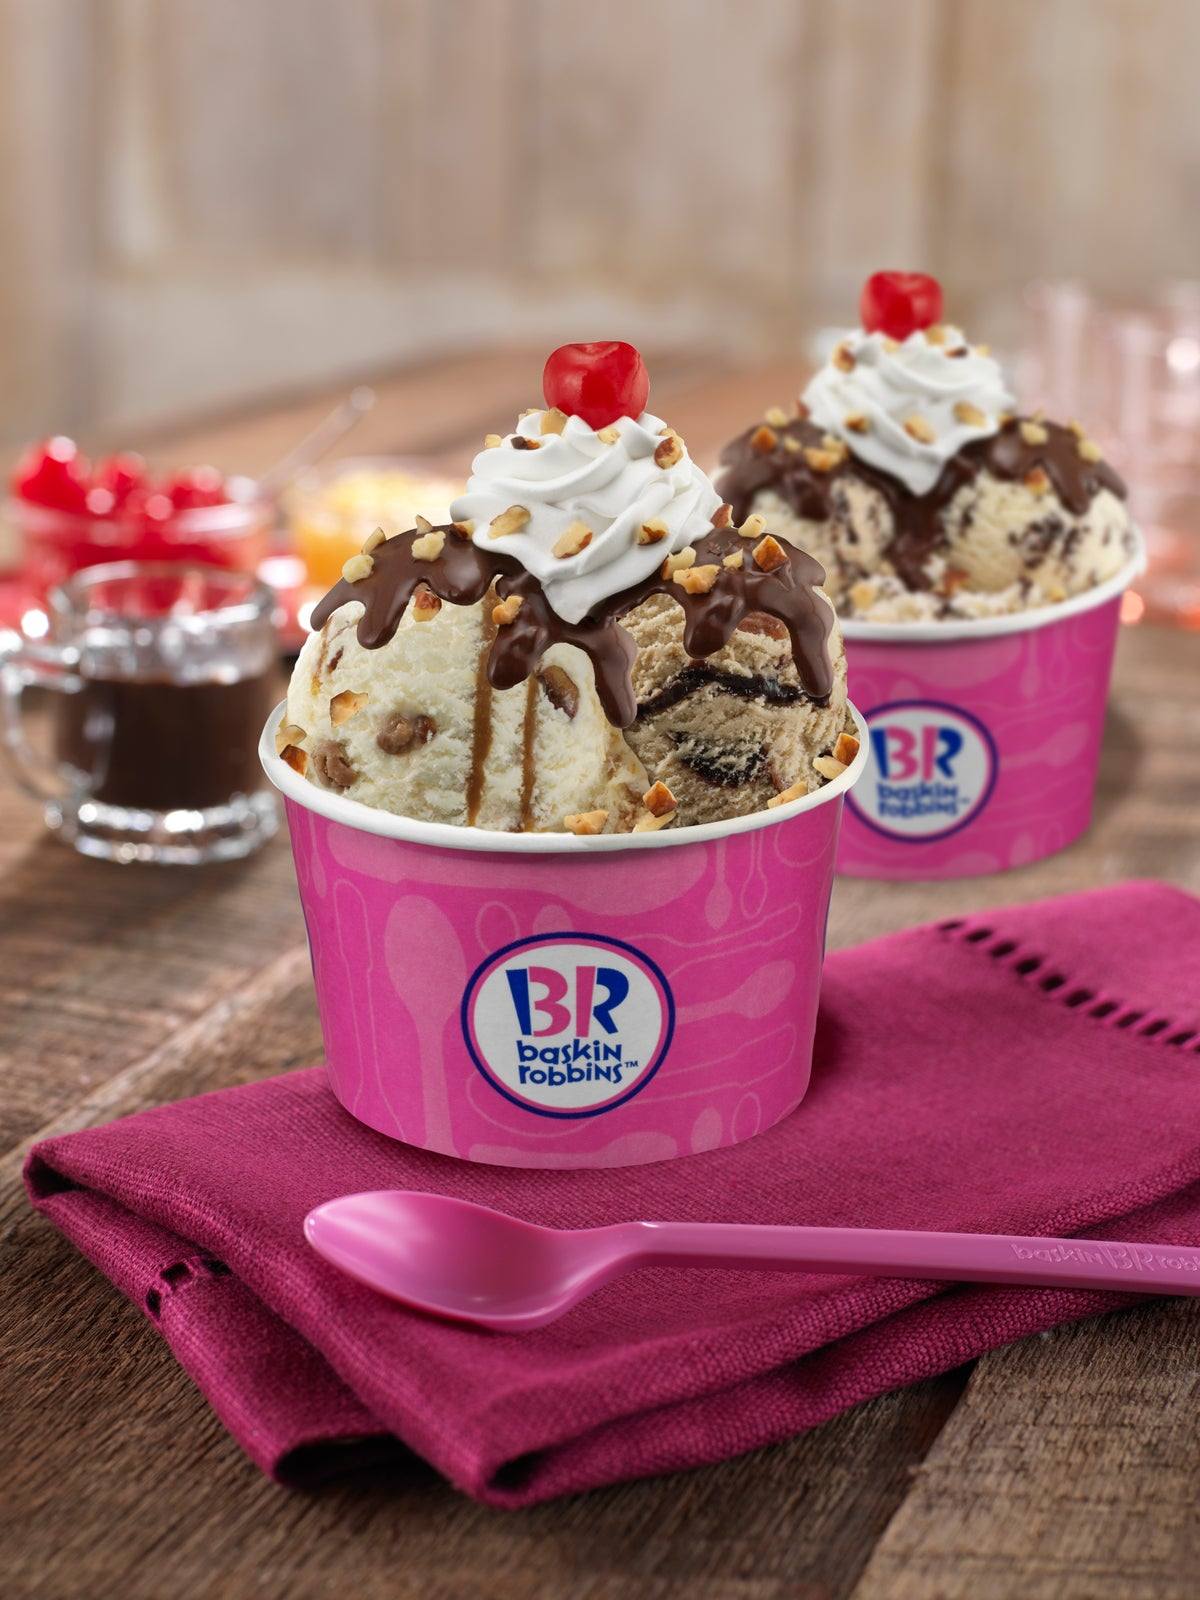 baskin robbins Baskin-robbins was founded in 1945 in glendale, california by burton baskin and irvine robbins, ice cream enthusiasts and brothers-in-law, whose passion inspired what is now the world's largest chain of ice cream specialty shops.